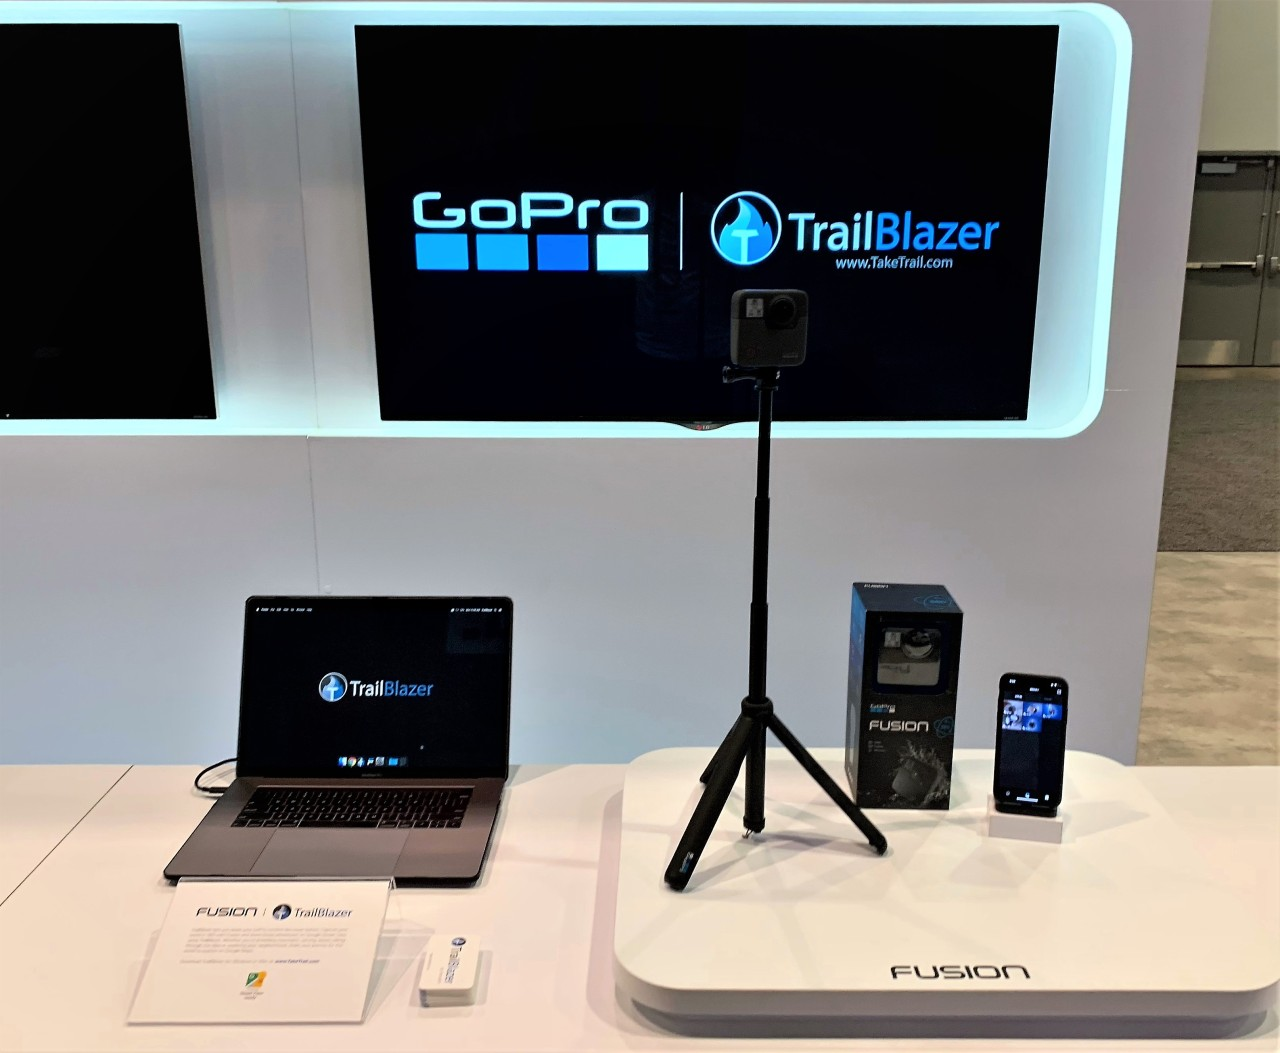 TrailBlazer at NAB 2019